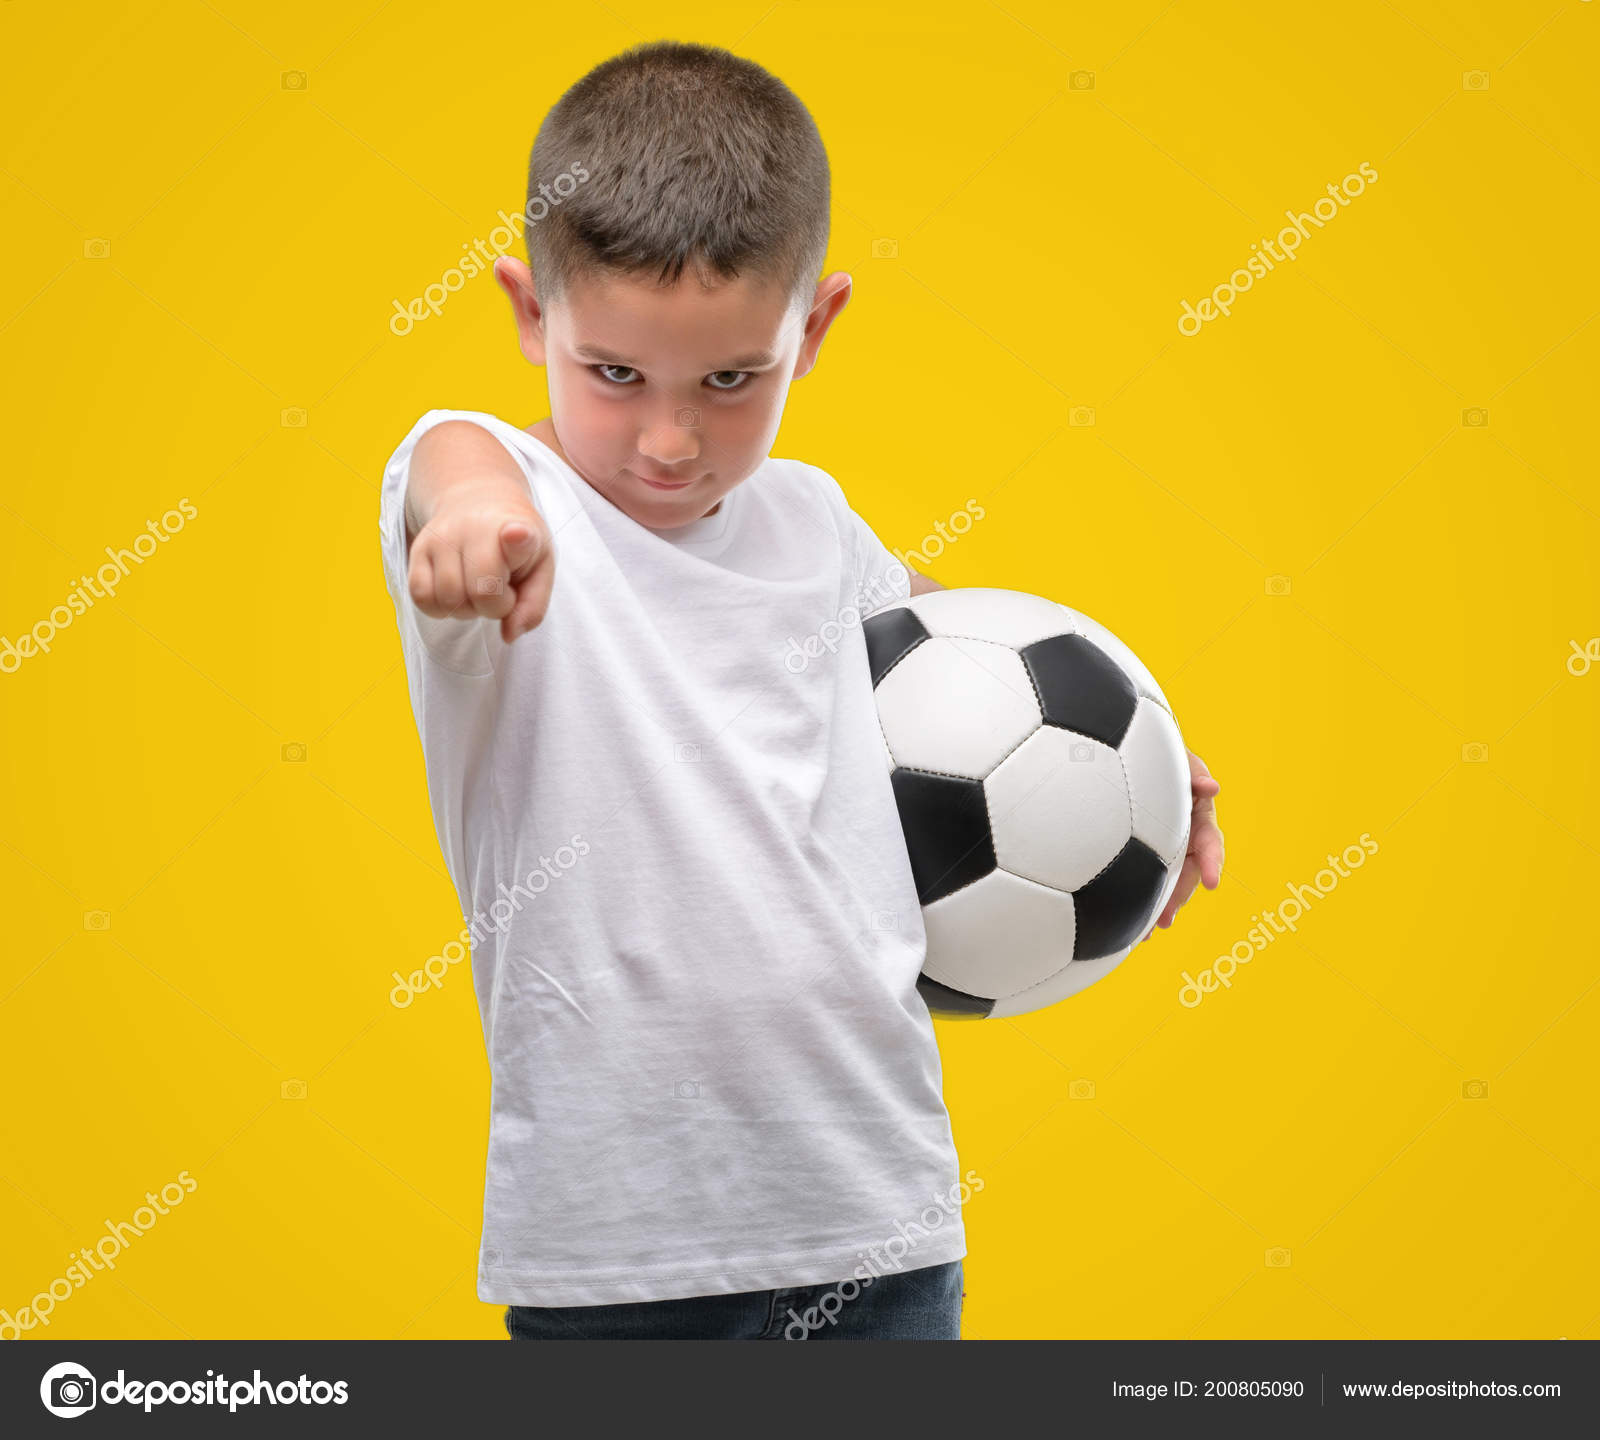 6ed99b6a2 Dark Haired Little Child Playing Soccer Ball Pointing Finger Camera — Stock  Photo